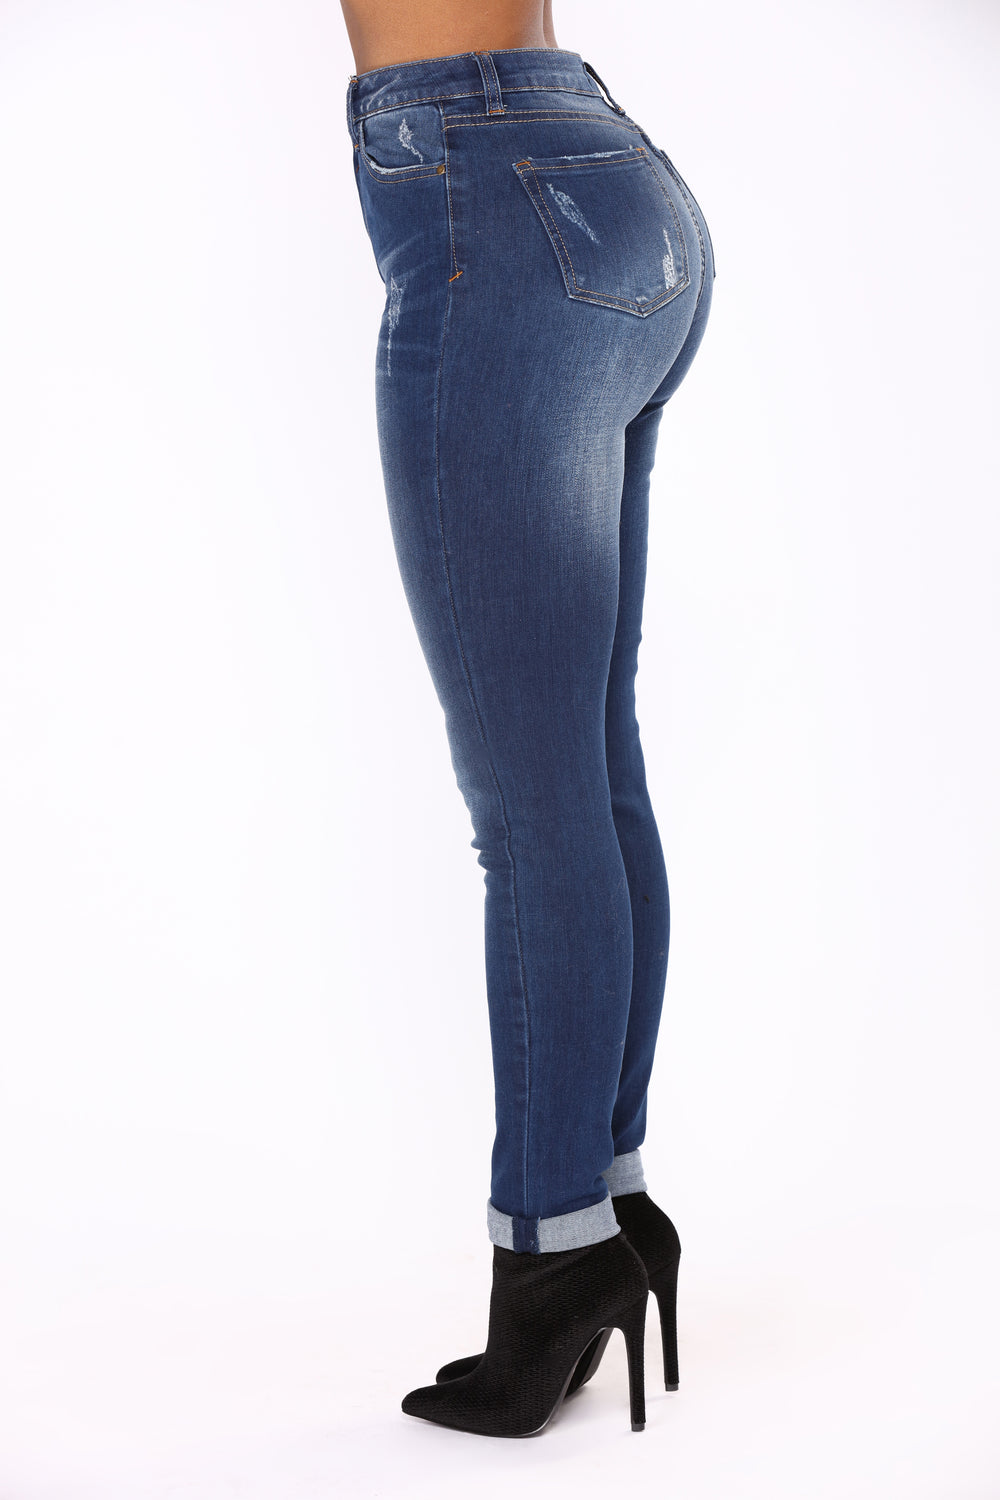 Andres Ankle Jeans - Medium Blue Wash